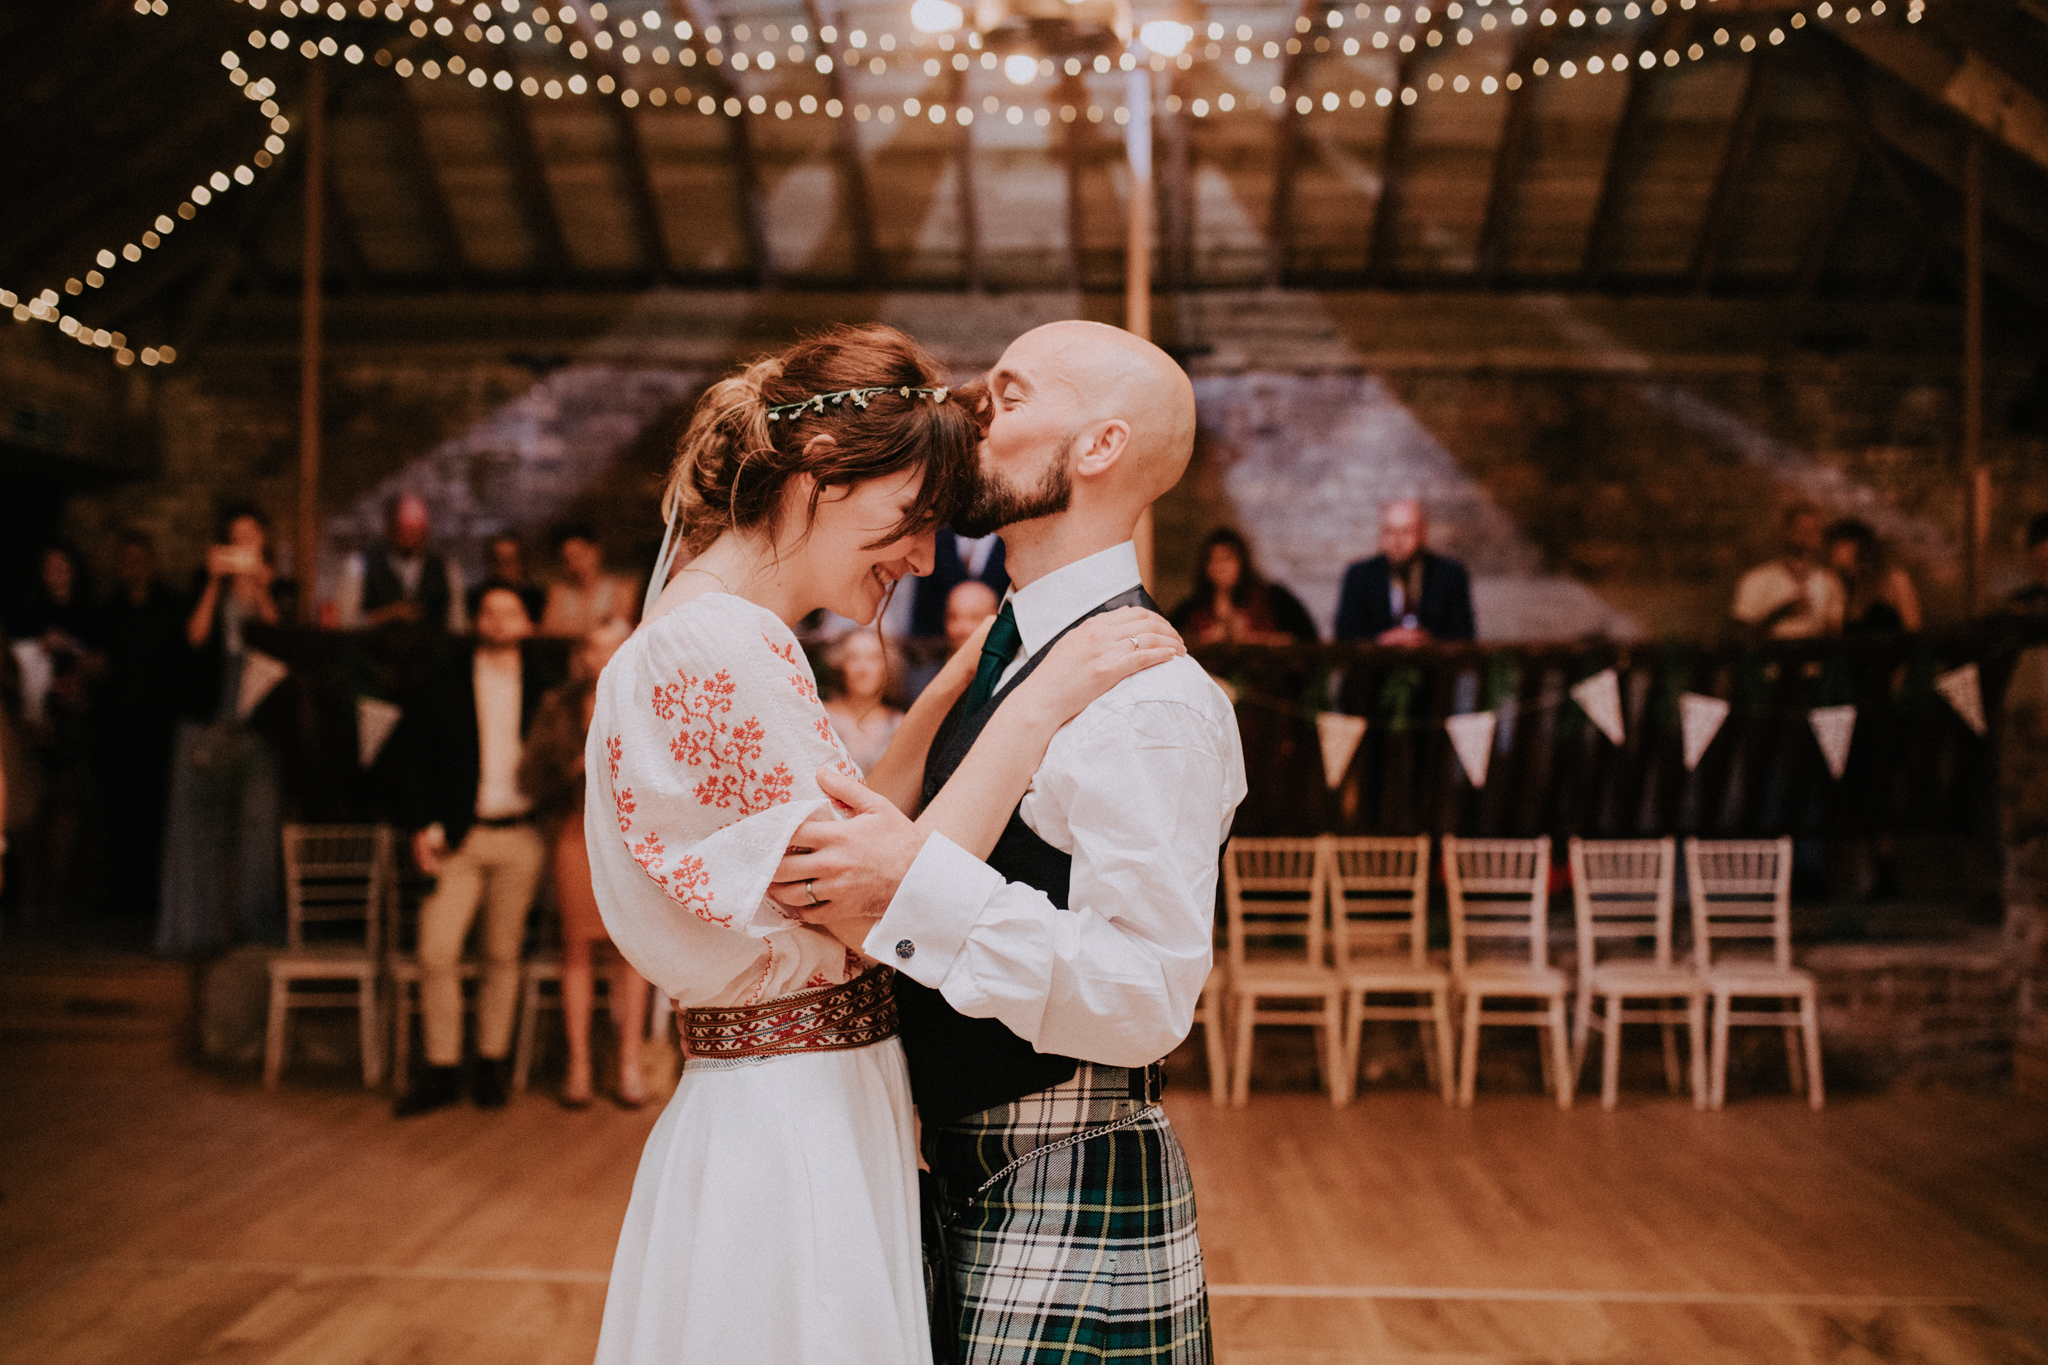 The first dance as a husband and wife